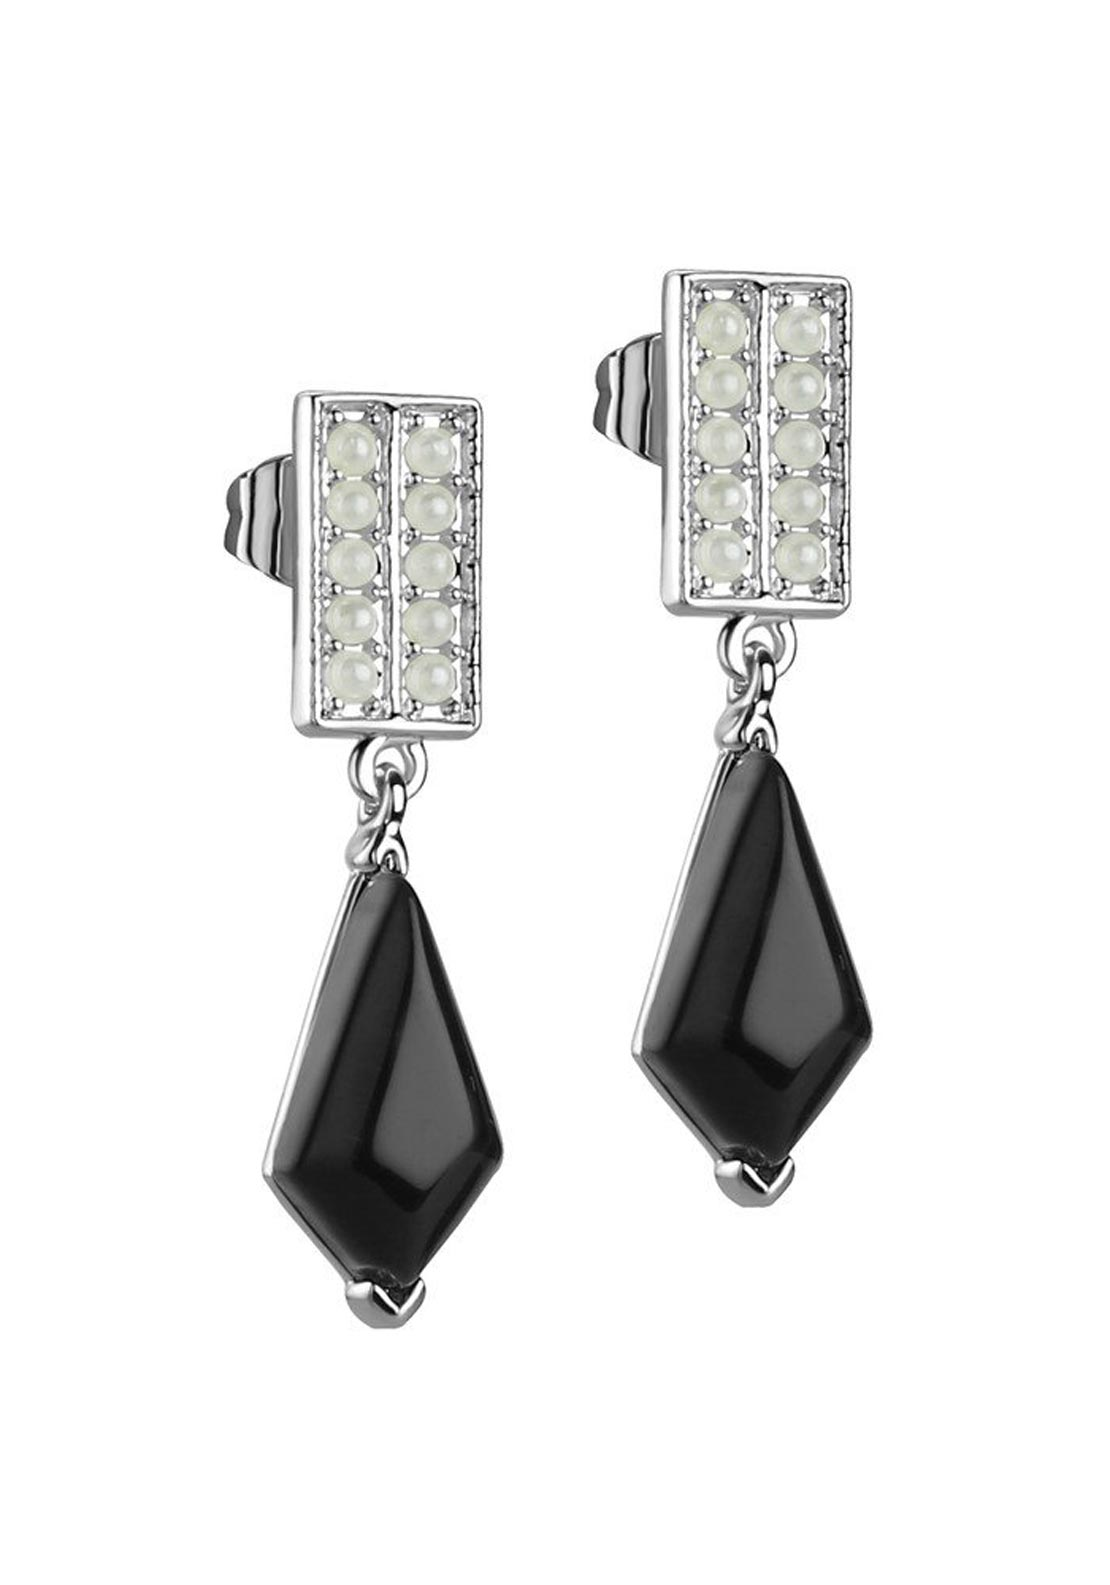 Newbridge Vintage Black Stone Earrings